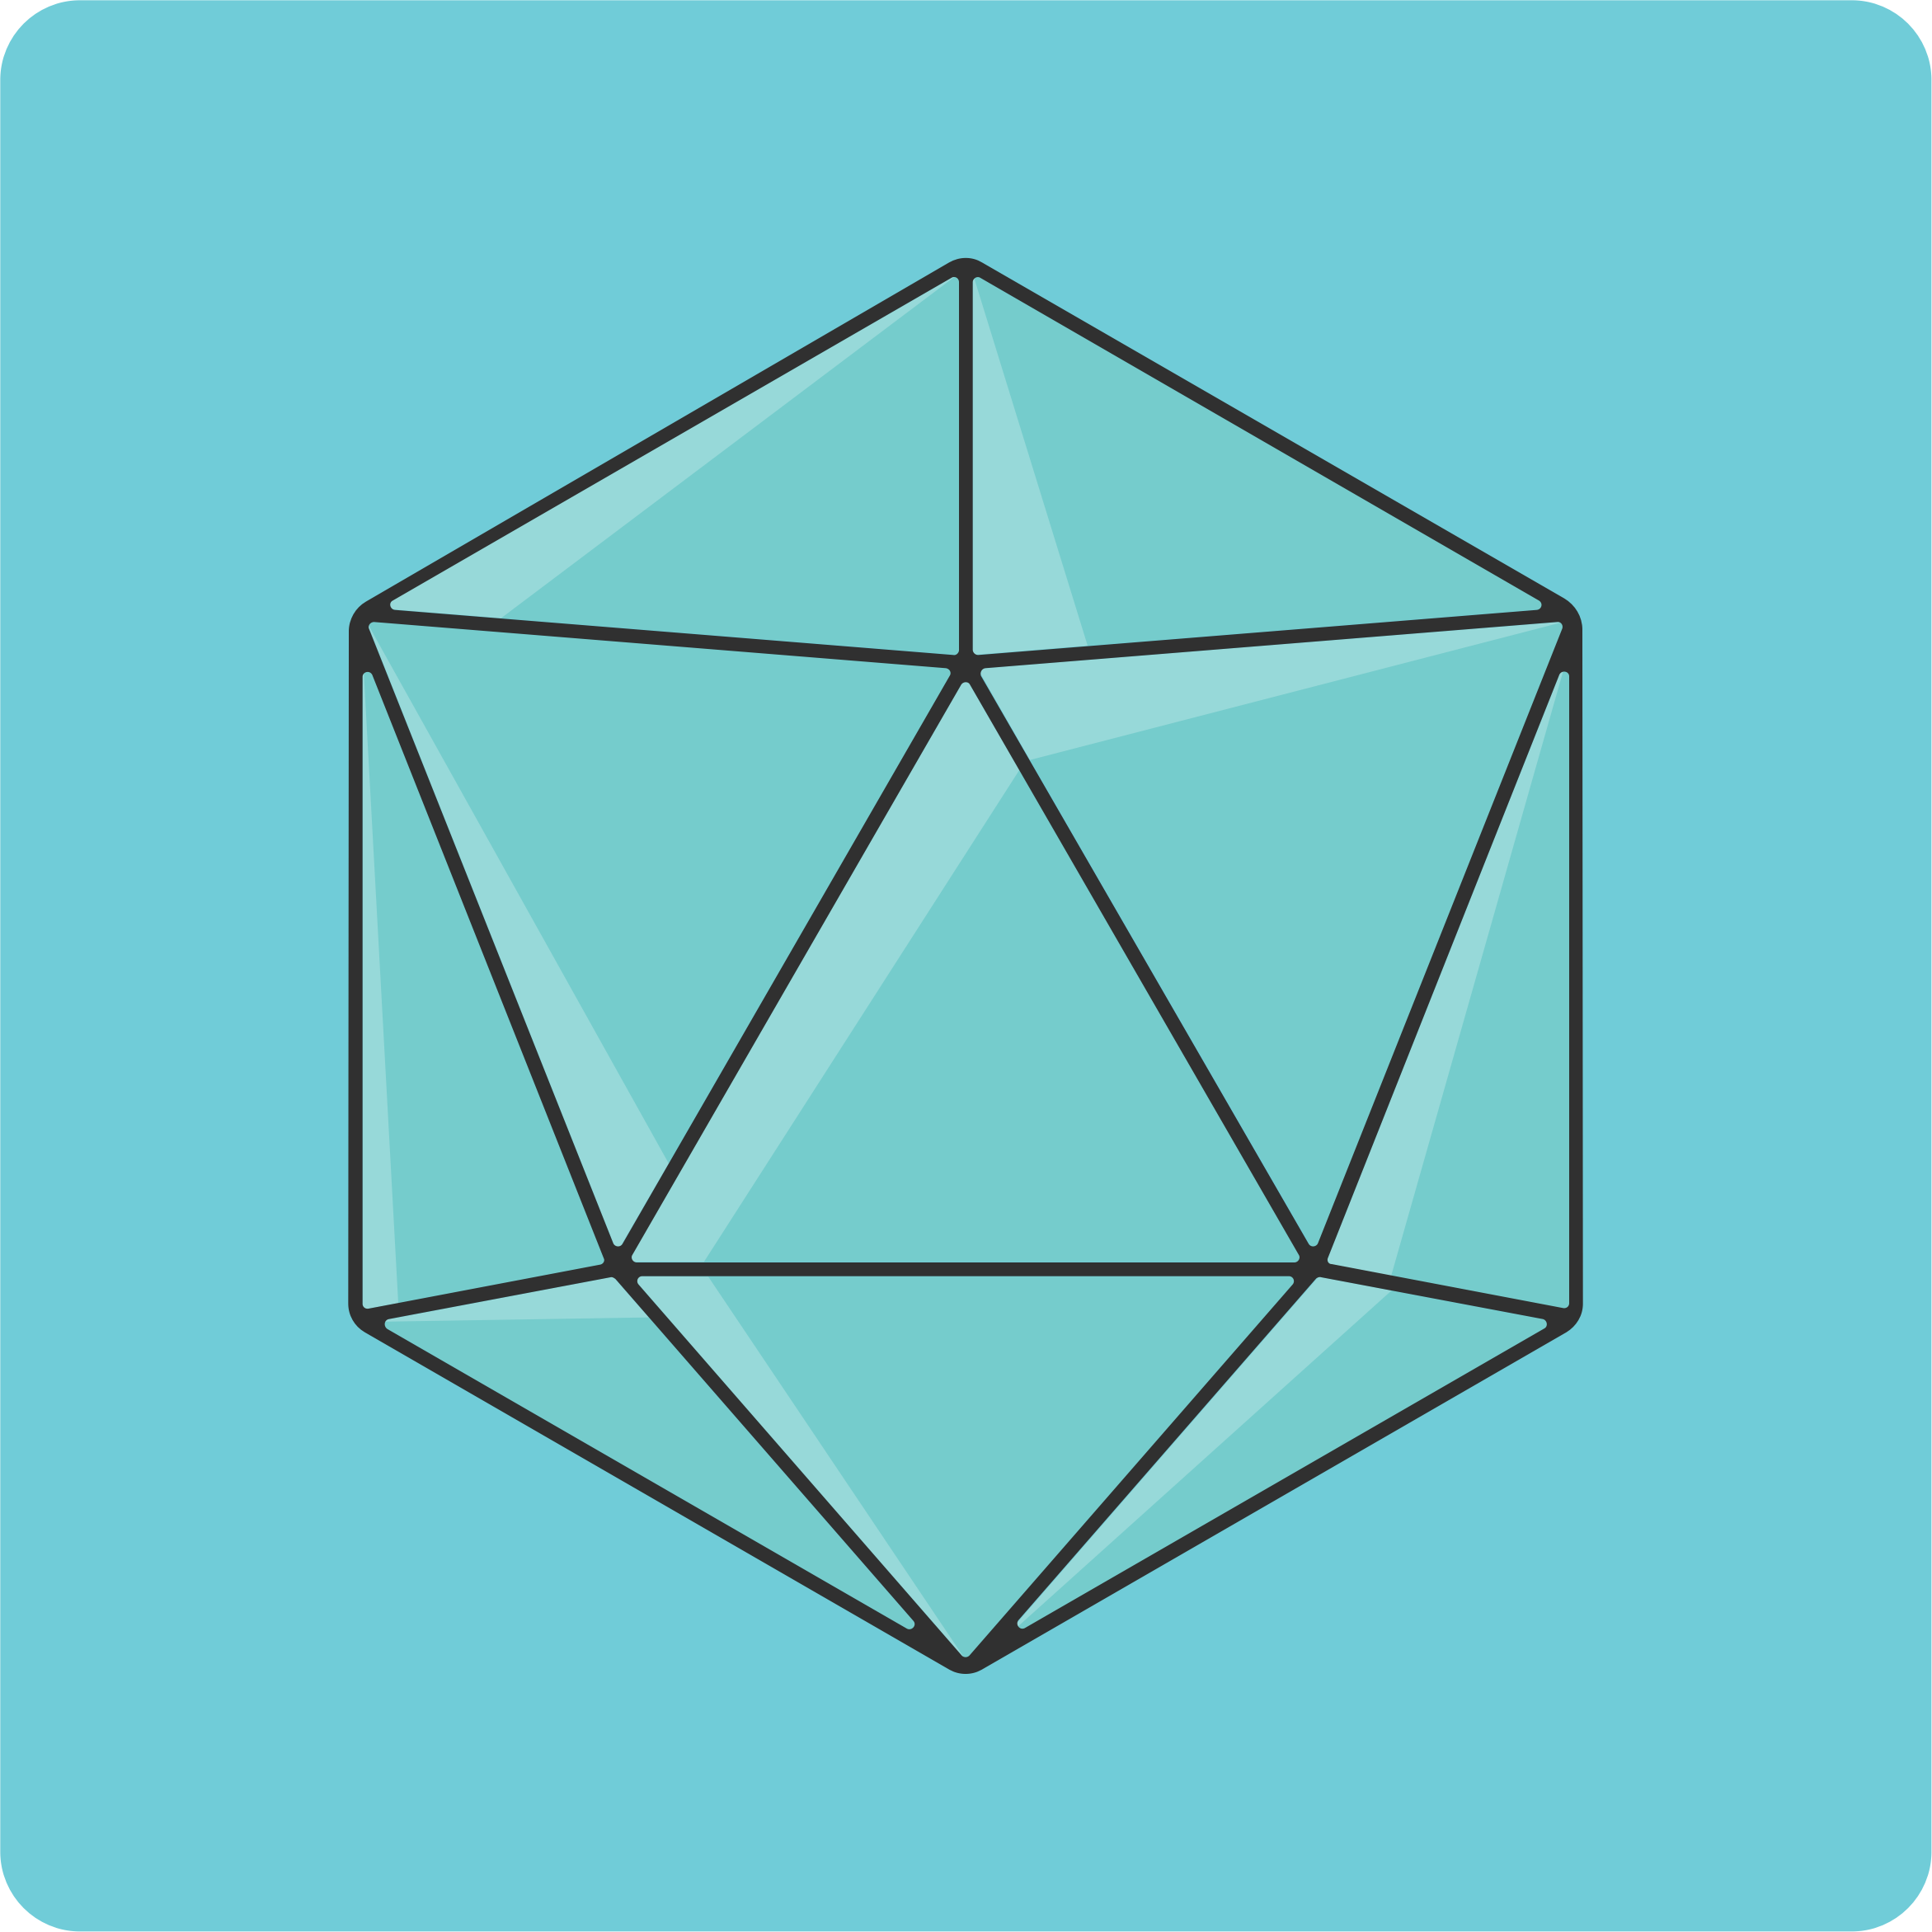 20 sided dice icon by cinemacookie